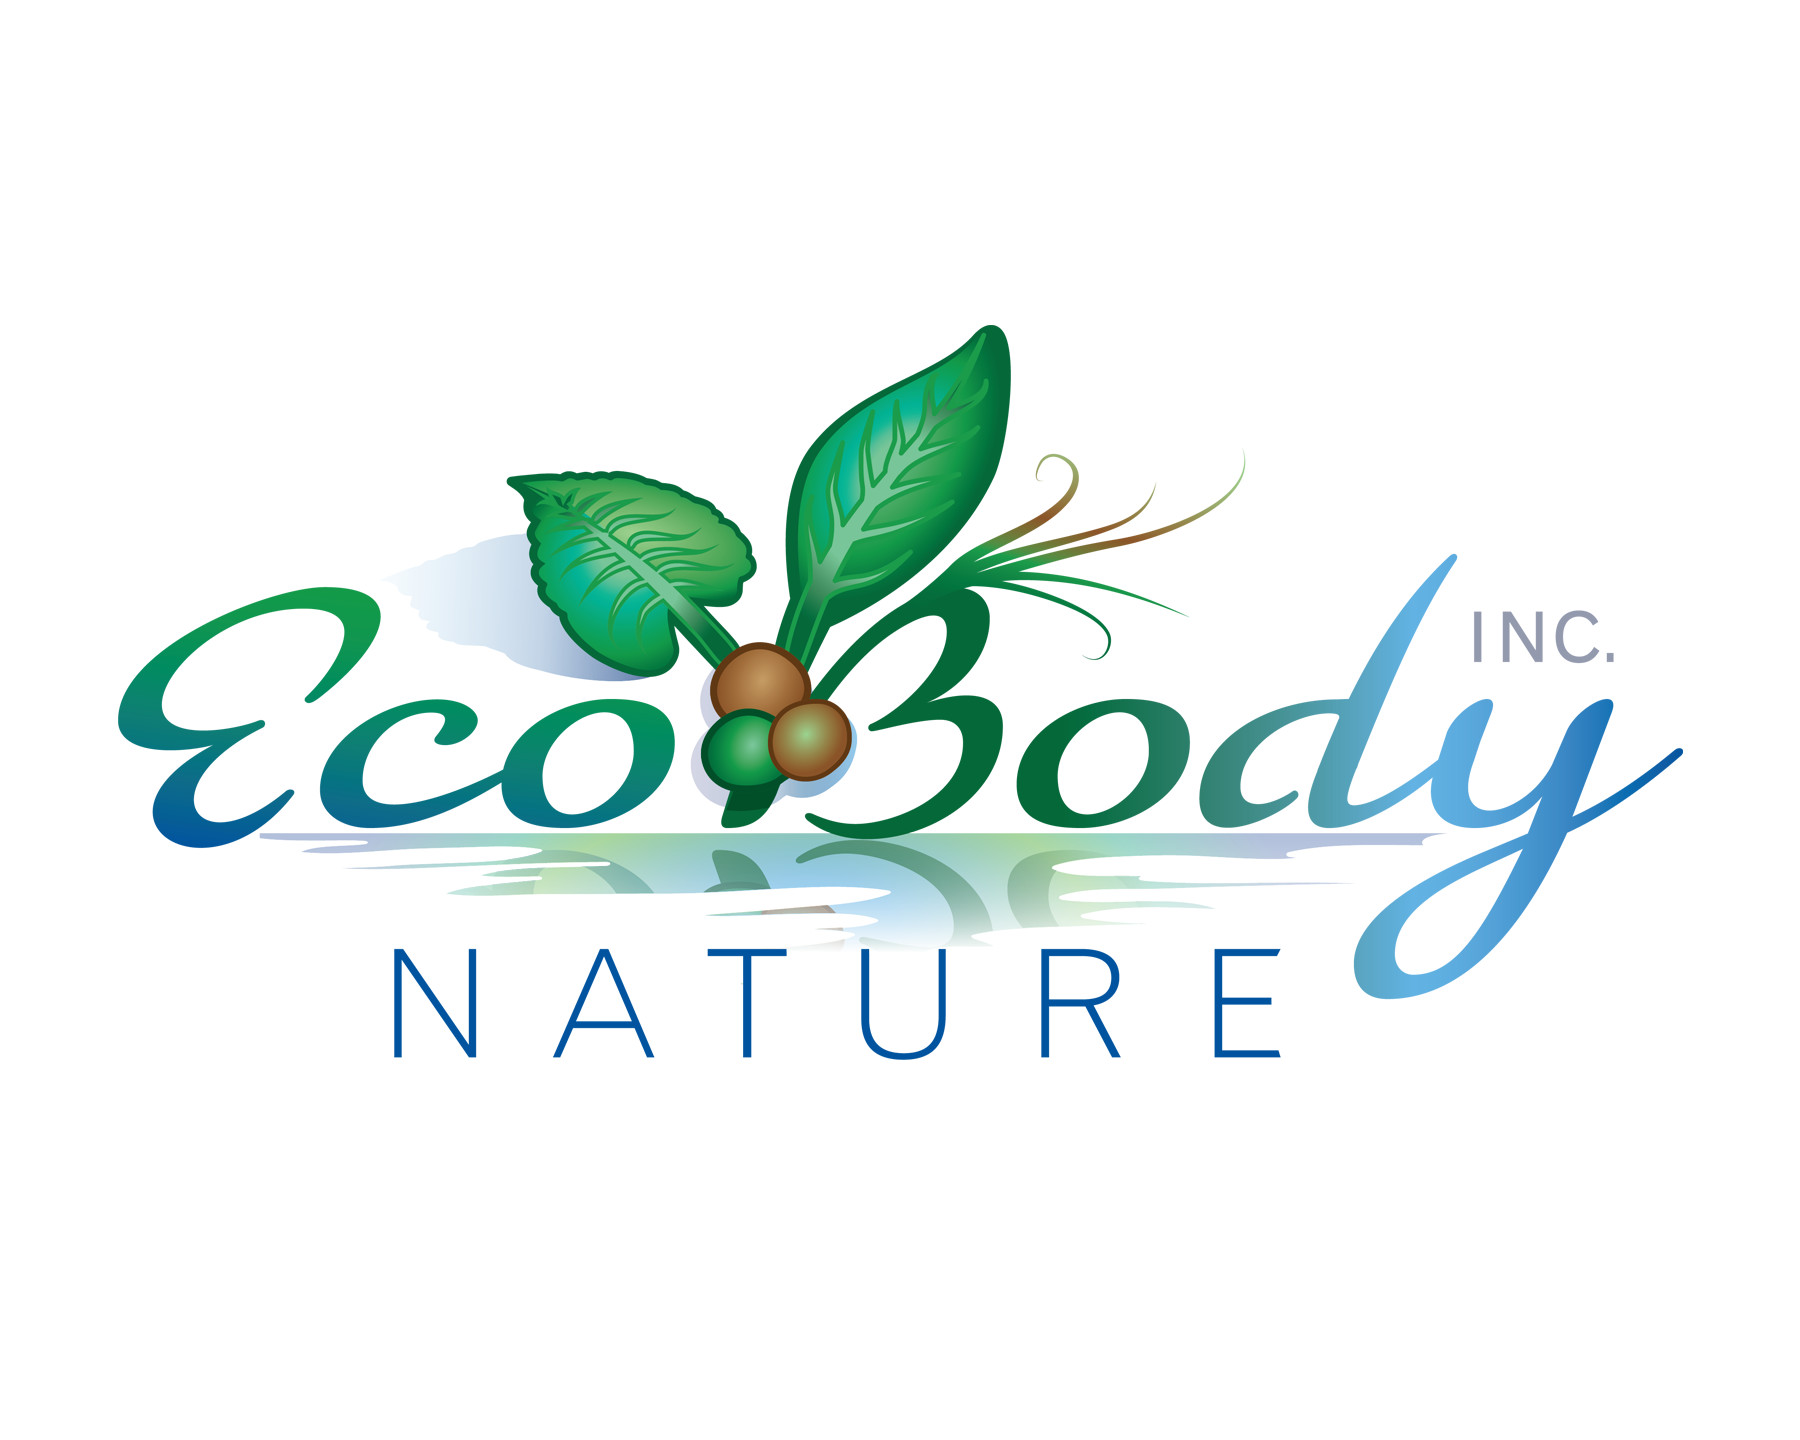 EcoBodyNature